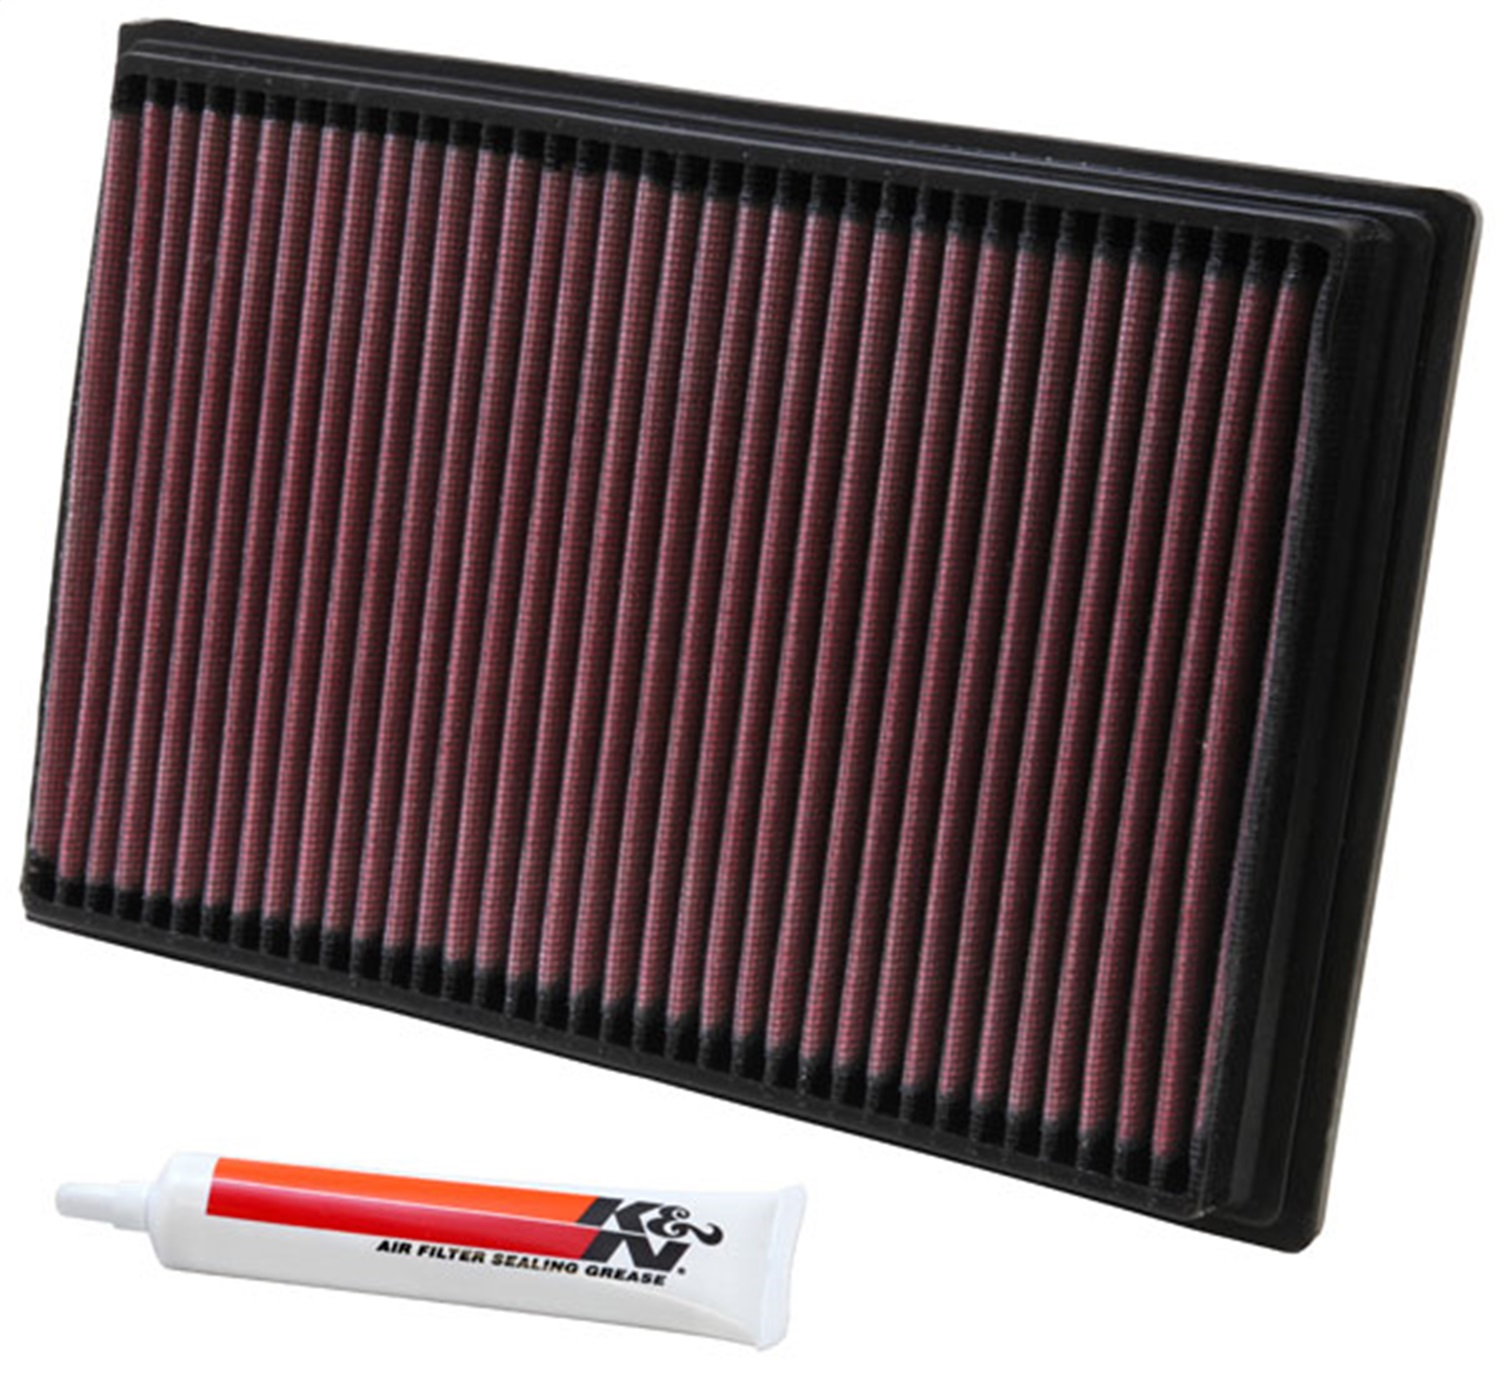 K&N Filters 33-2649 Air Filter Fits 04-07 CTS 33-2649